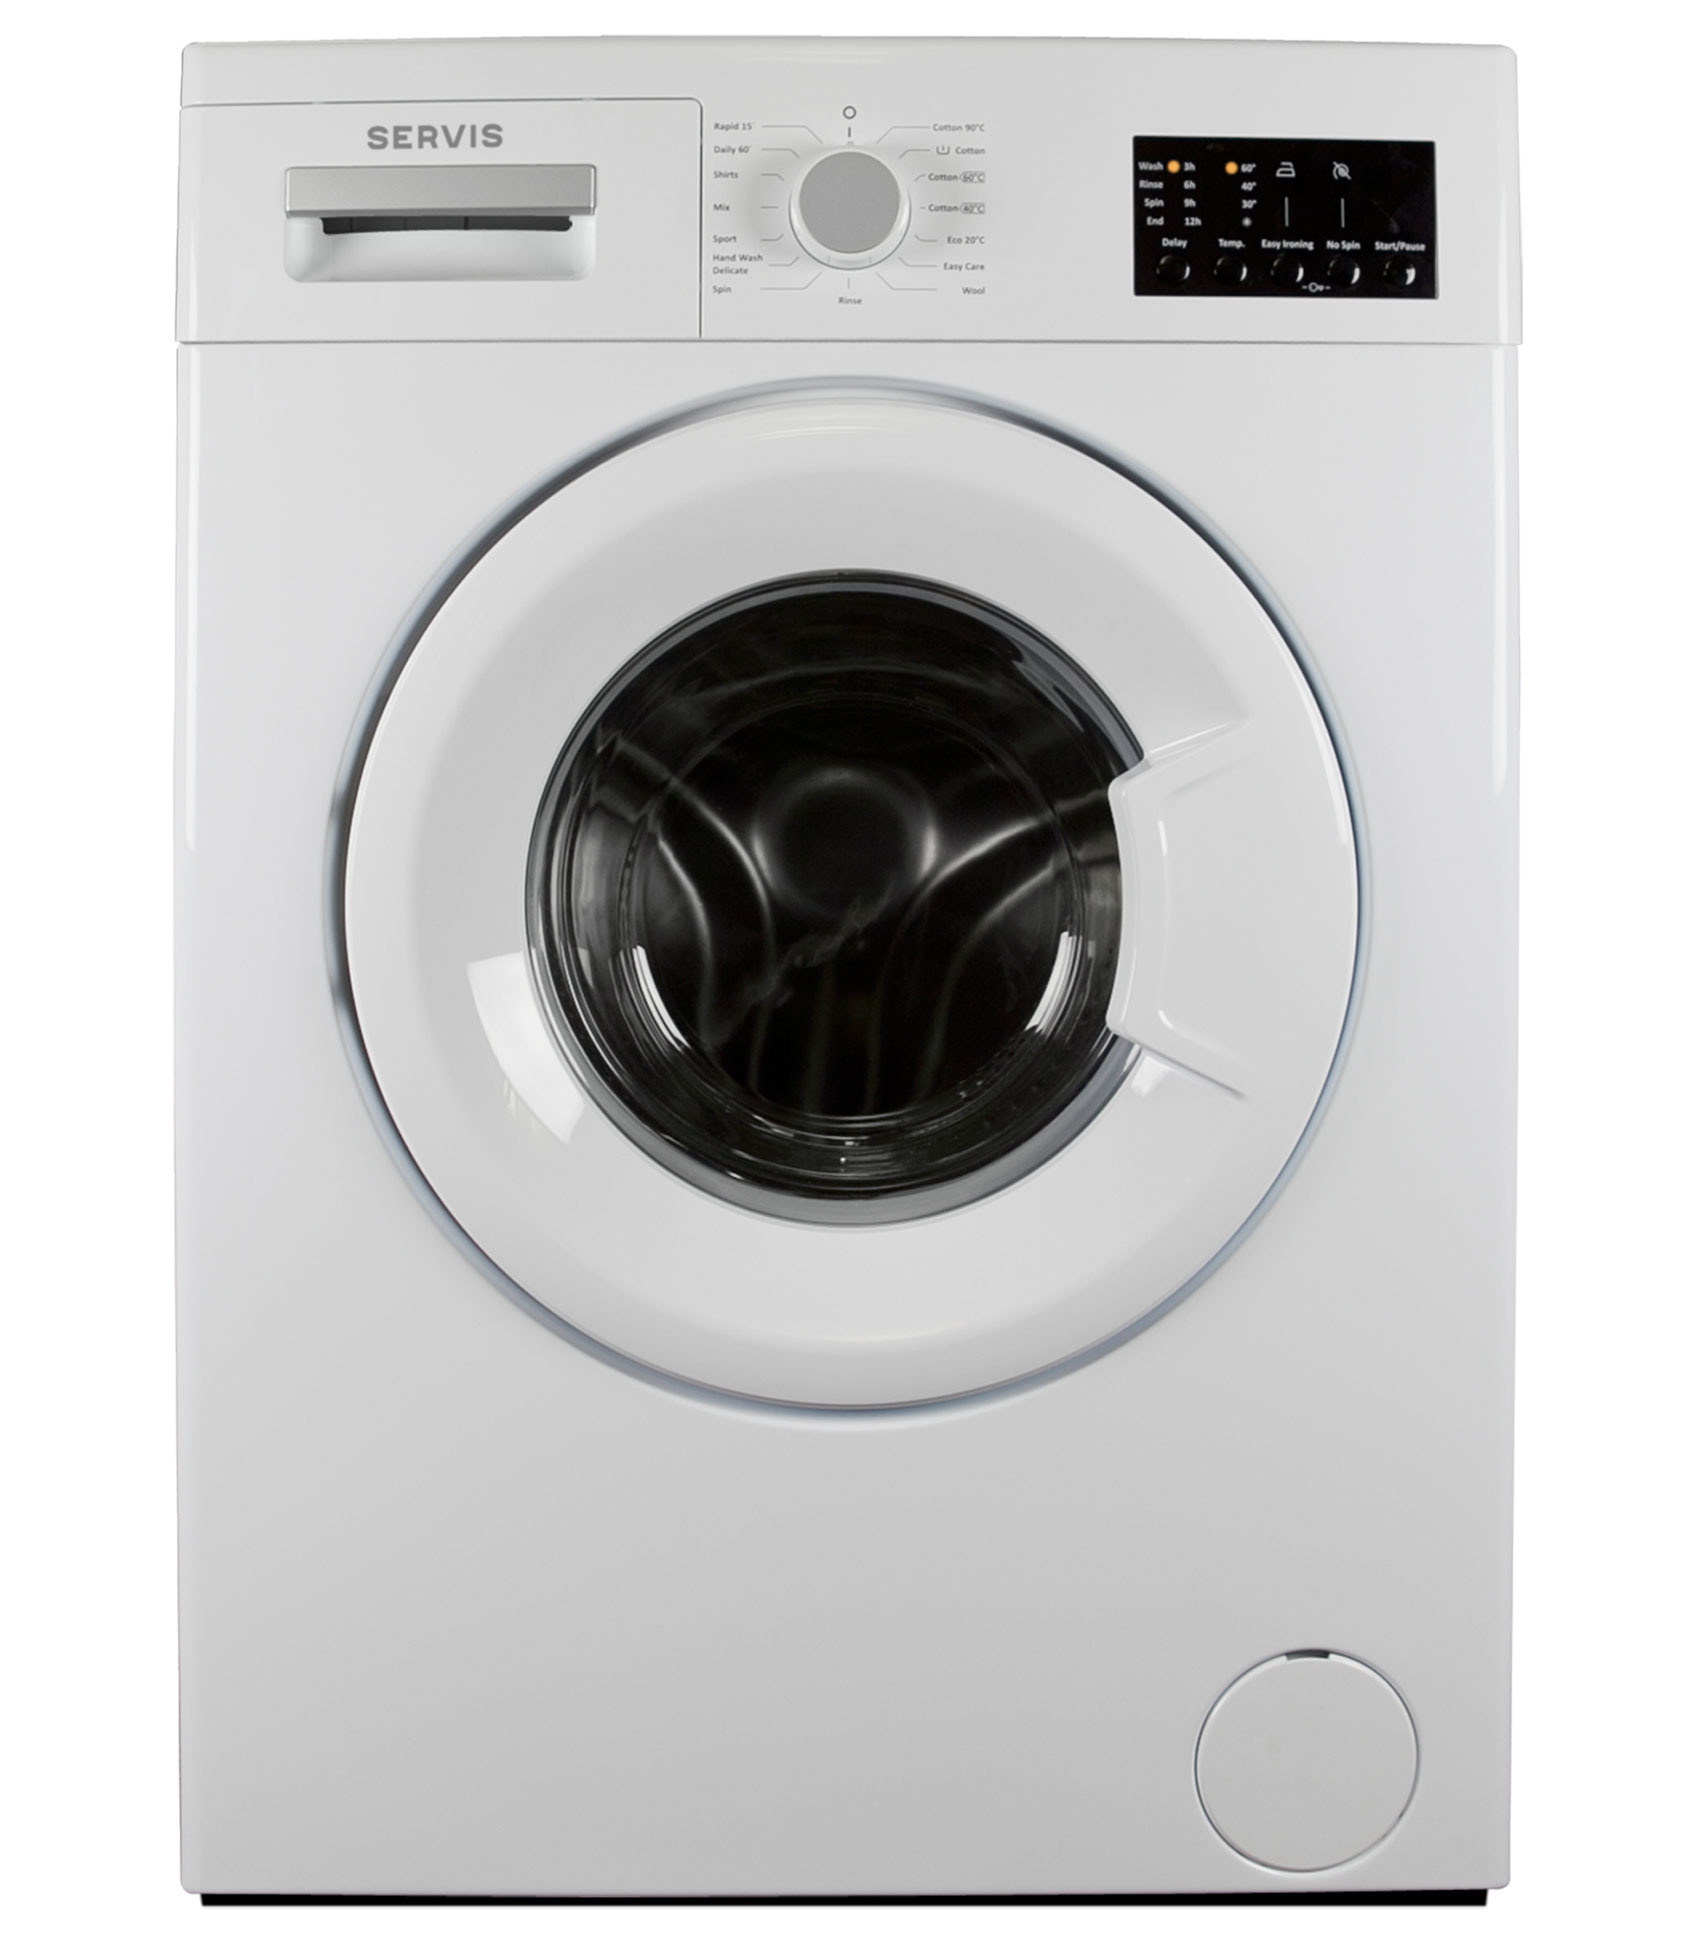 W61244F2AW - 6kg - Washing Machine